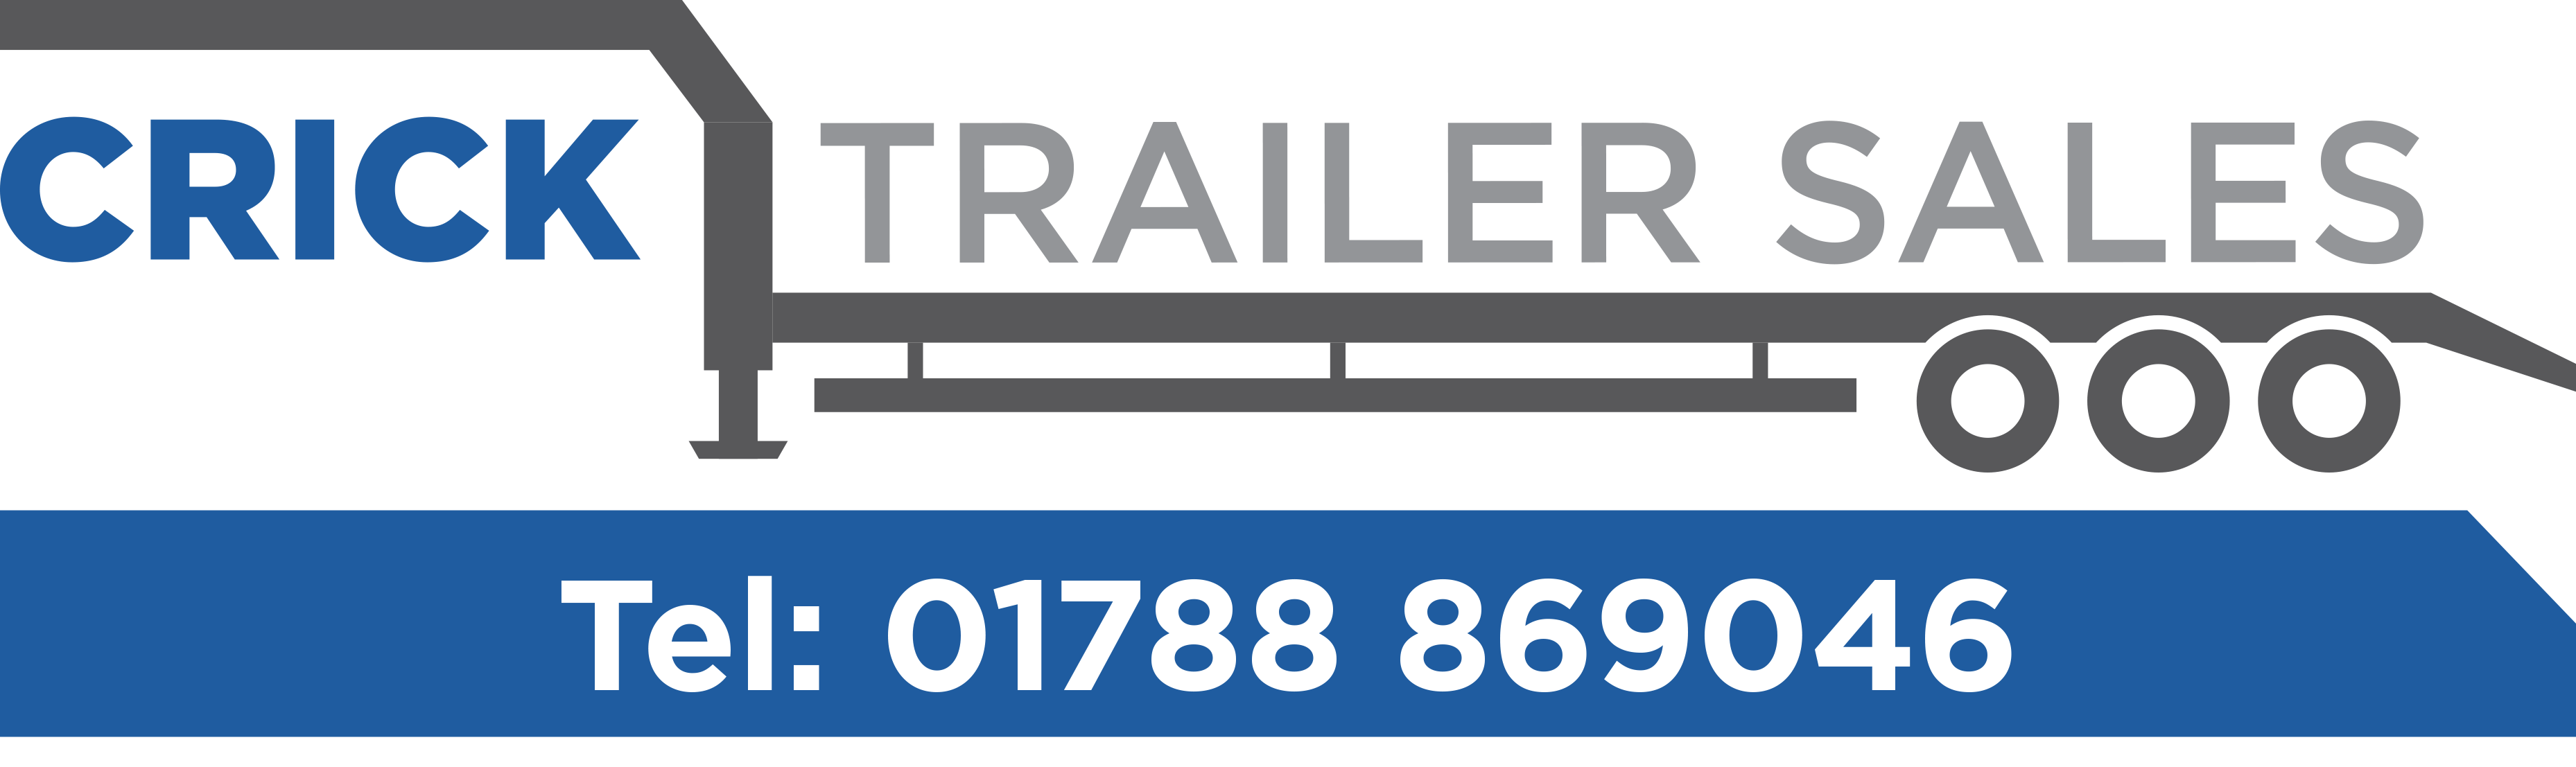 Crick Trailer Sales